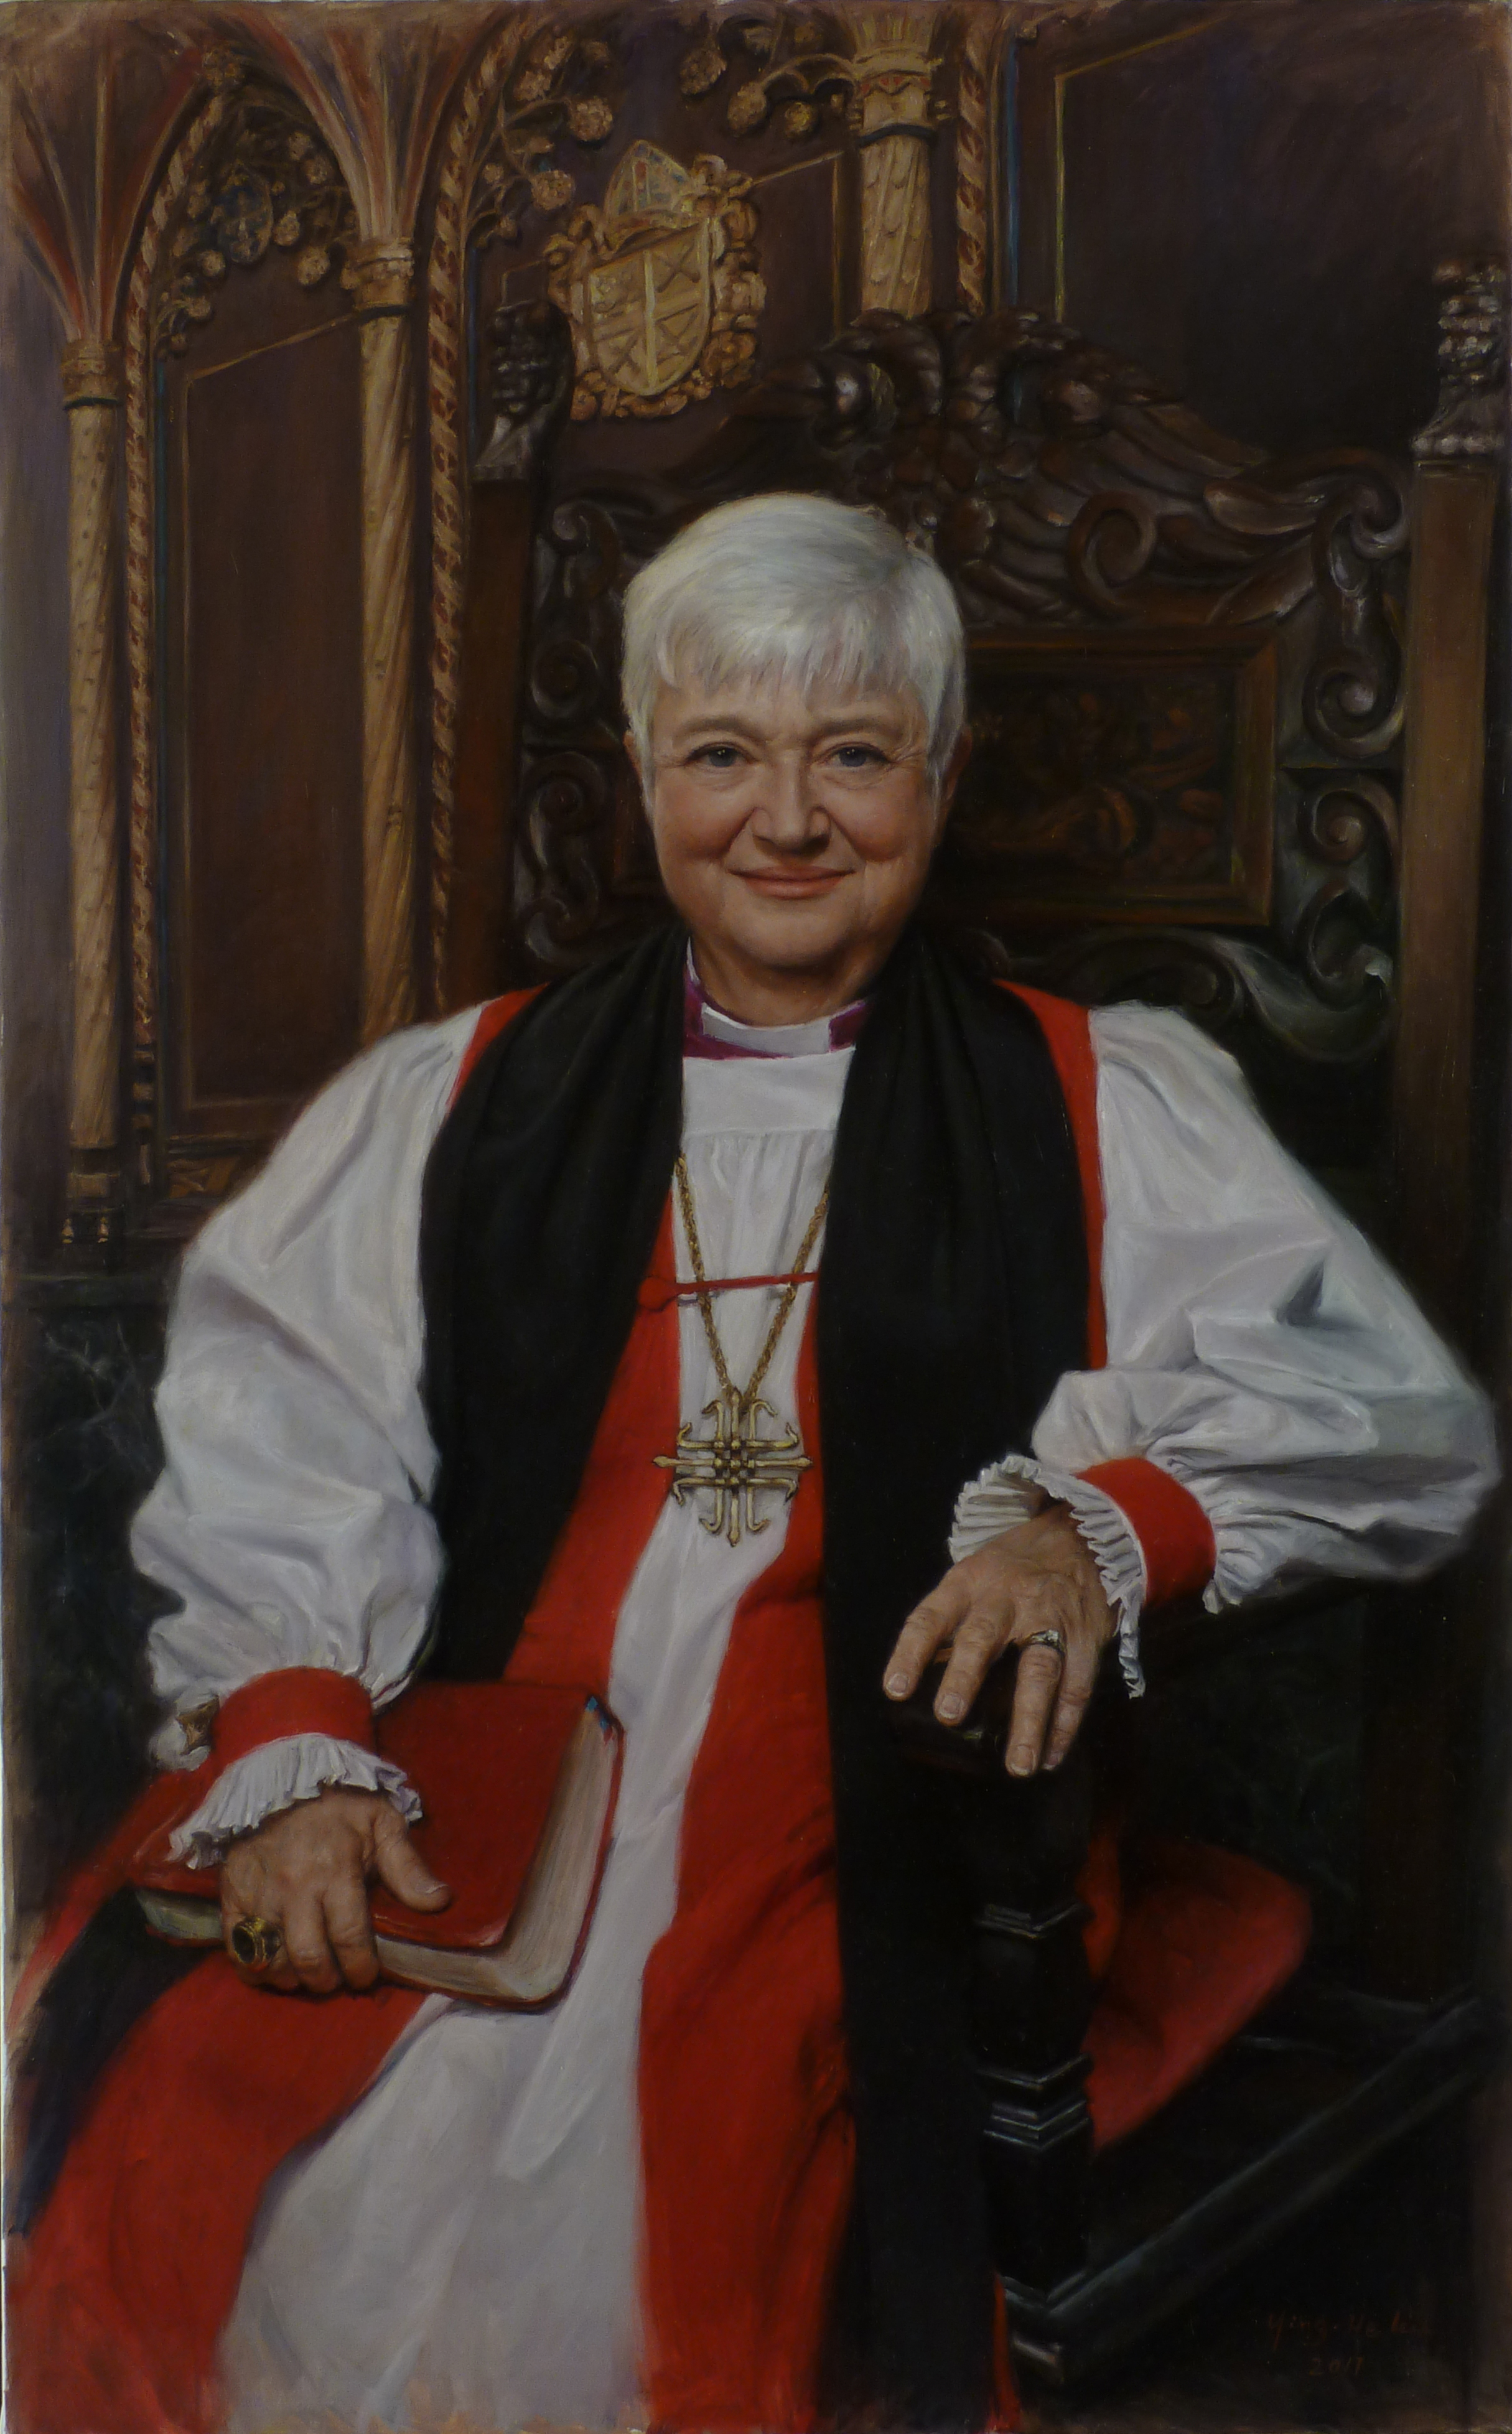 """Rt. Rev. Catherine S. Roskam Bishop Suffragan of New York The Episcopal Diocese of New York Second Place, 2011 Portrait Society Members Only Competition Oil on linen 48""""x30"""""""